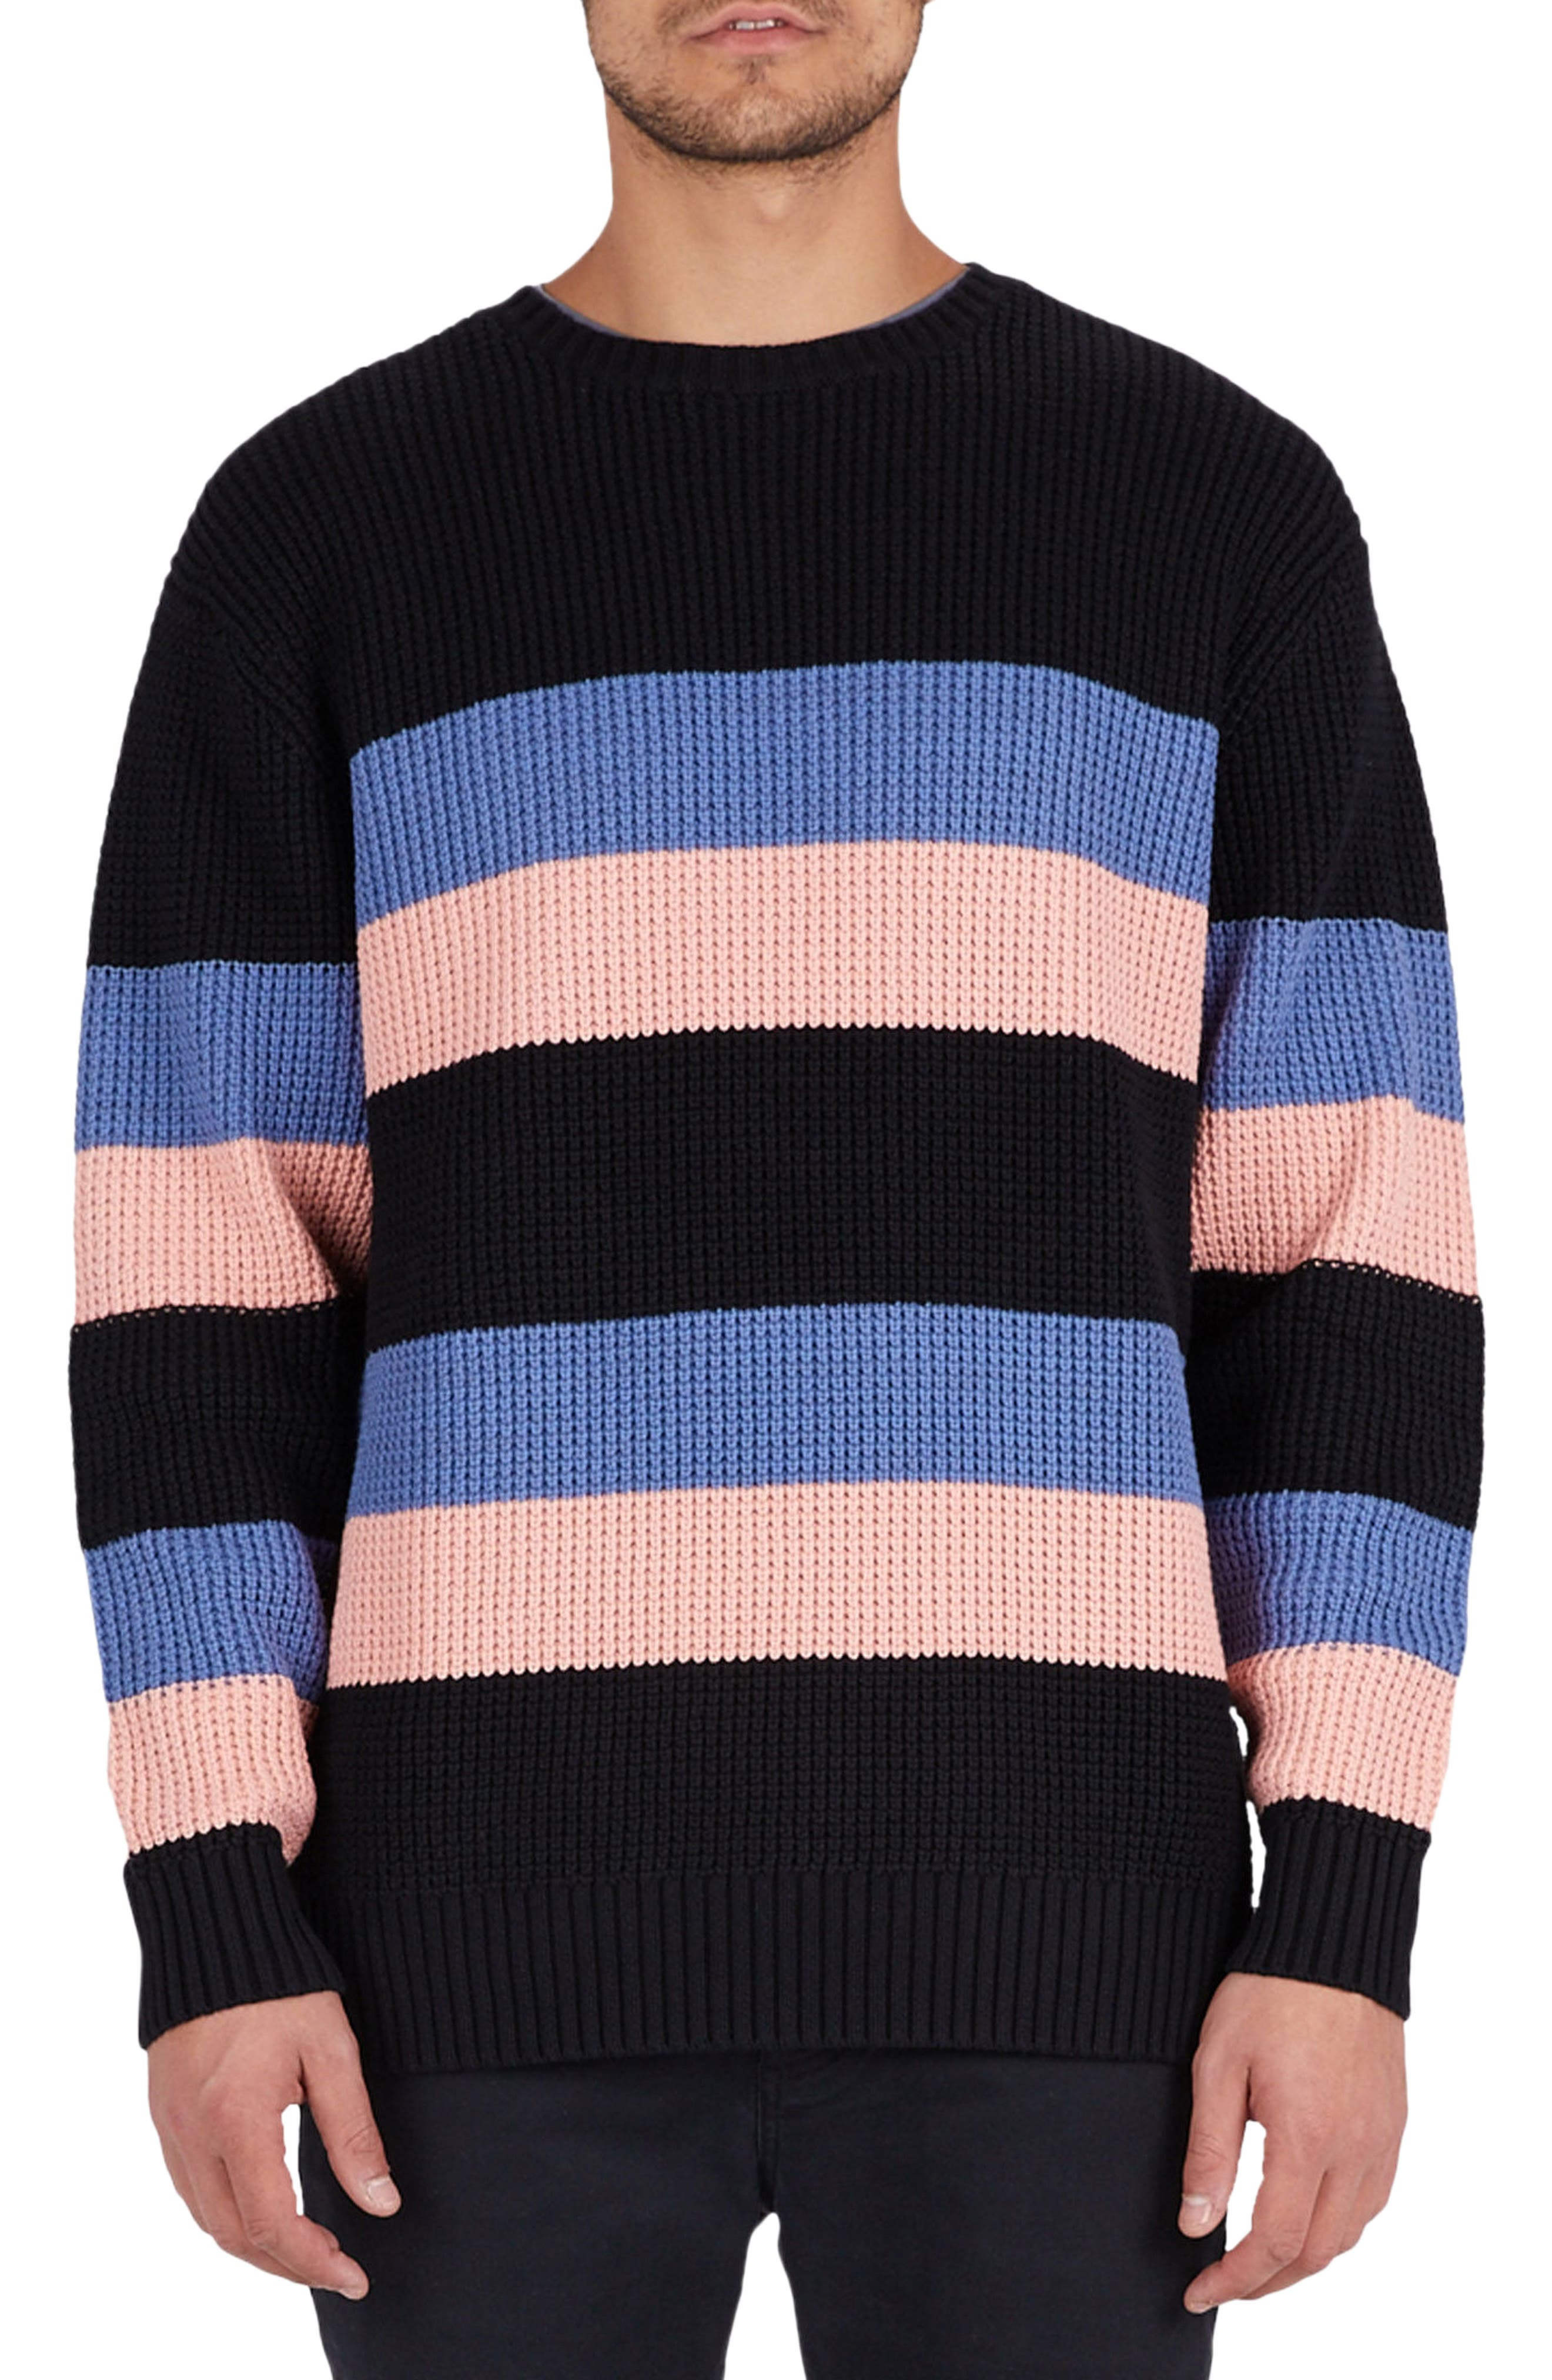 Rugby Stripe Sweater,                             Main thumbnail 1, color,                             001